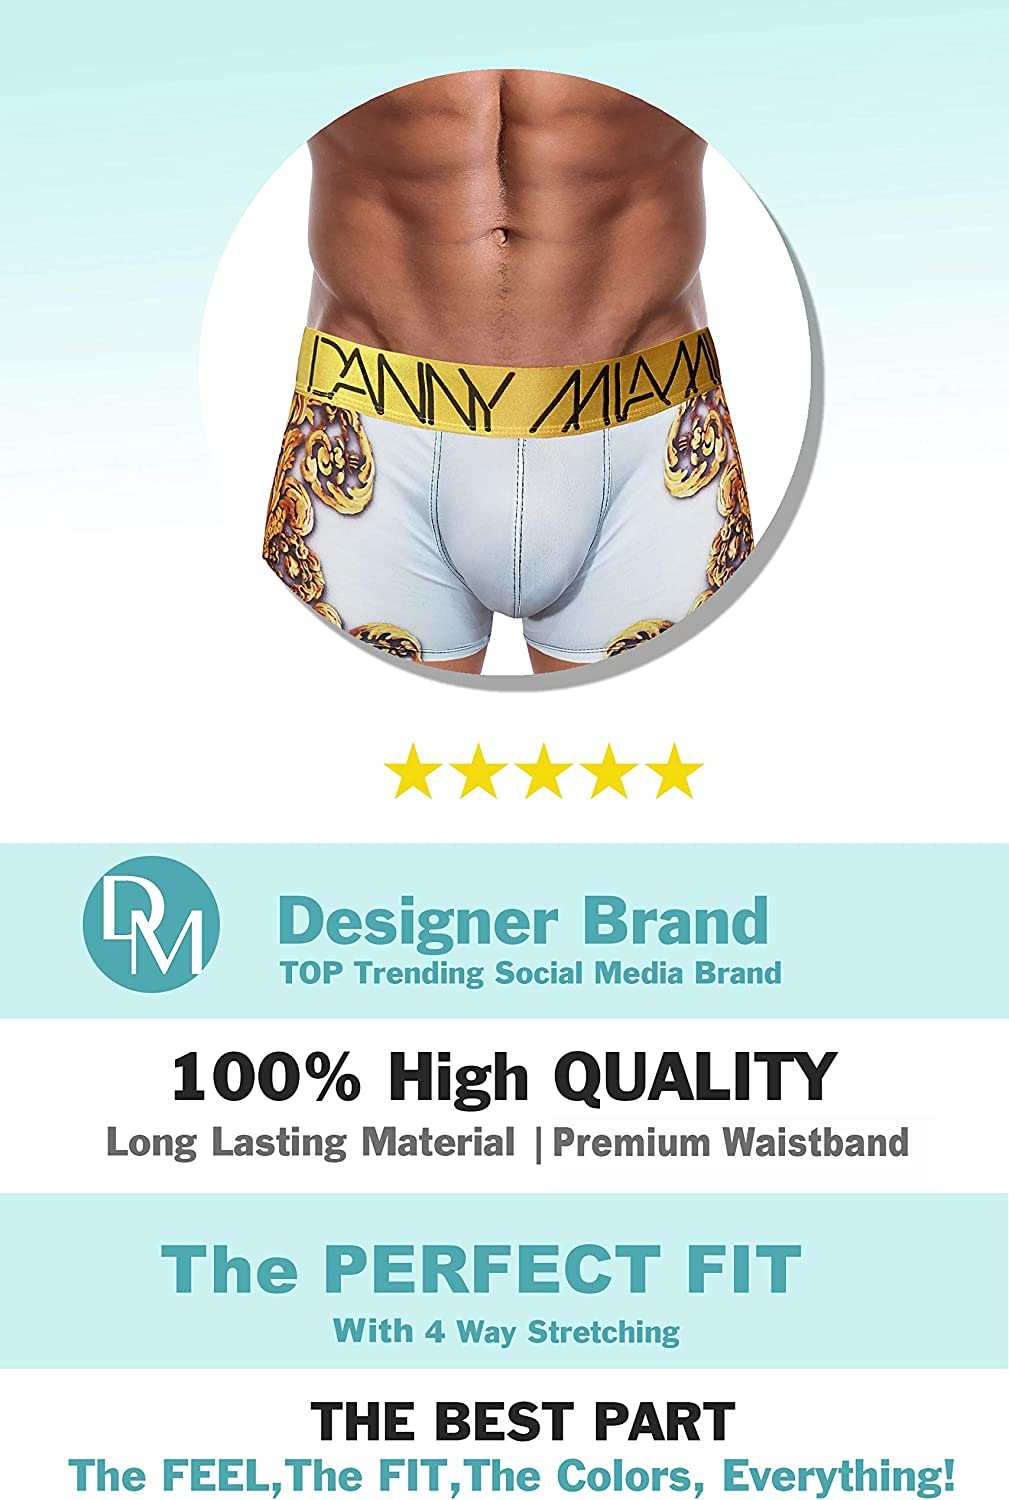 Boxer Briefs in Multiple Colors Patterns /& Designs New Danny Miami Mens Underwear Athletic Low Rise Short Cut